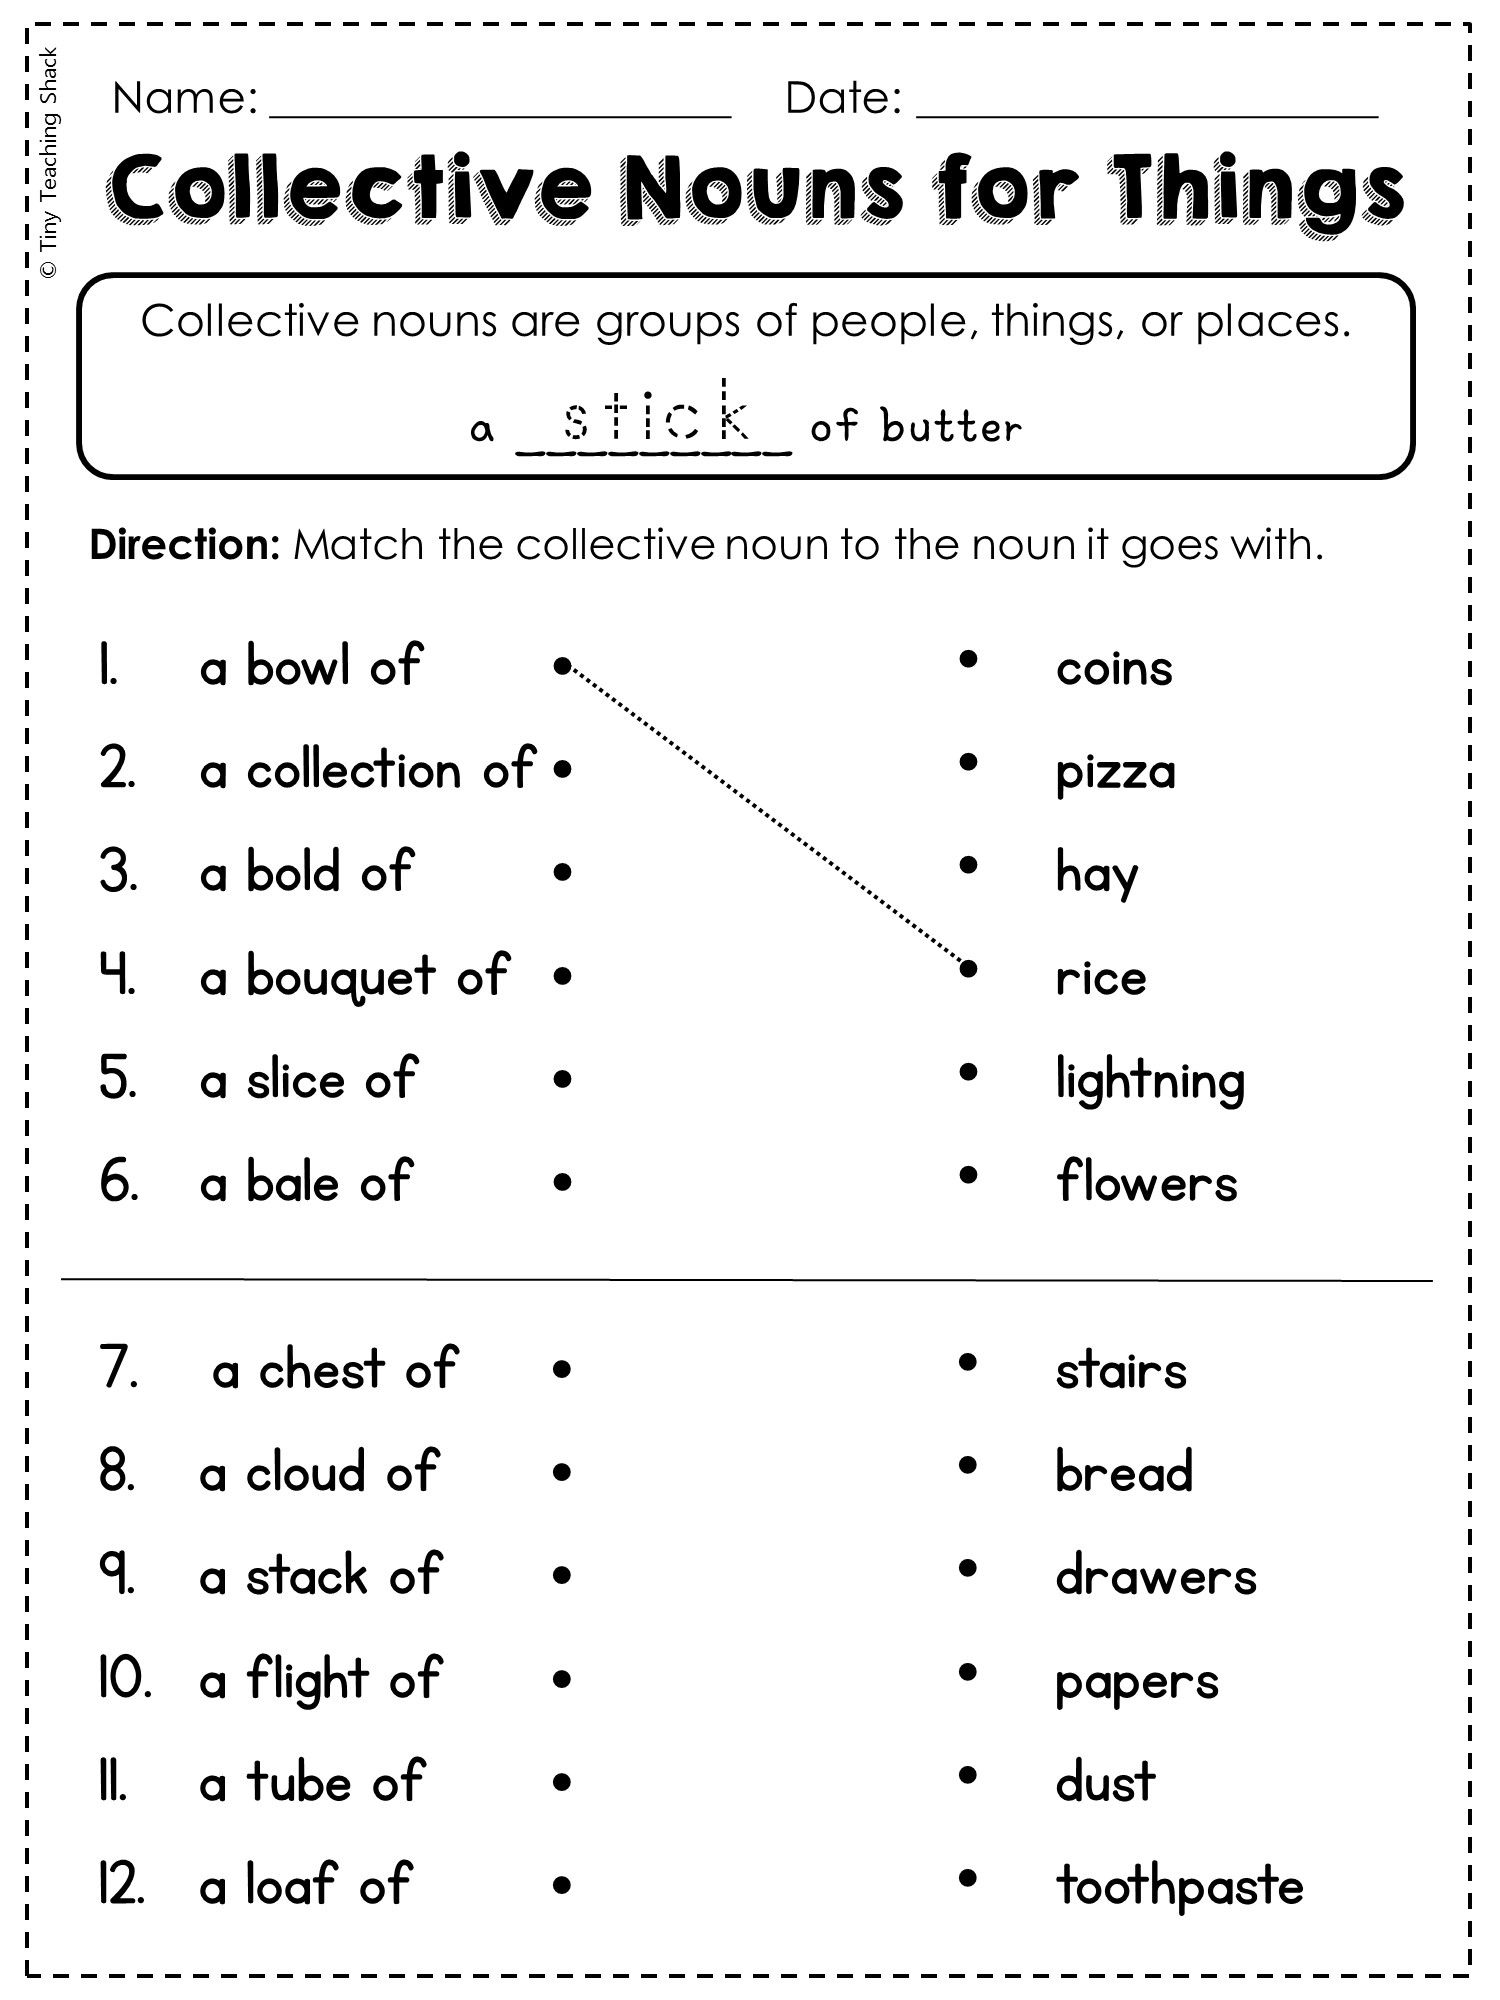 Free Collective Noun Worksheets In